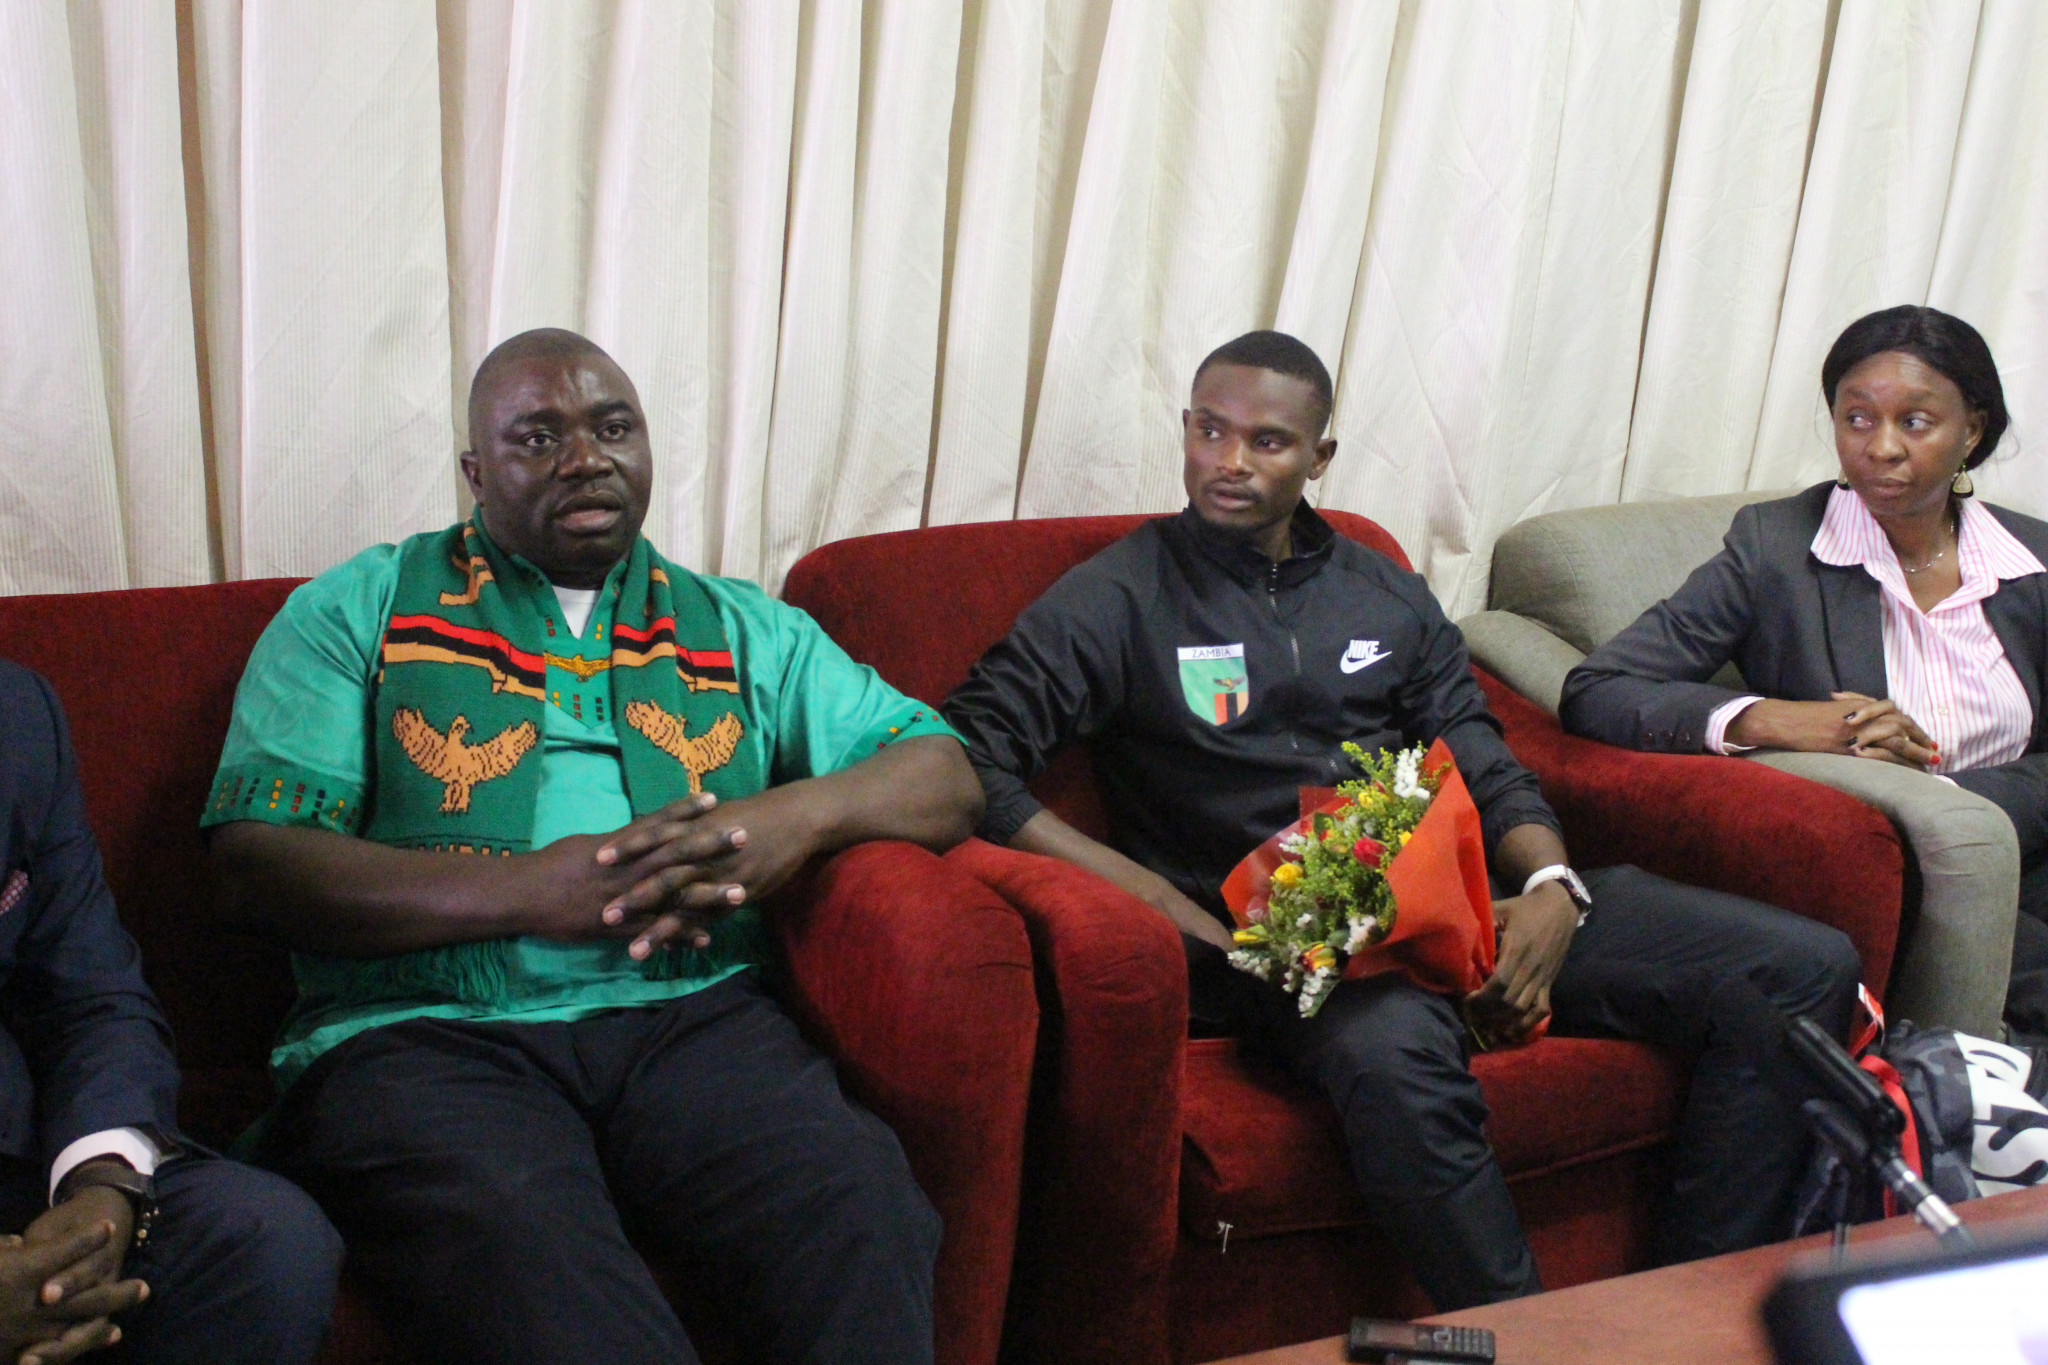 National Olympic Committee of Zambia President praises African Games medallists